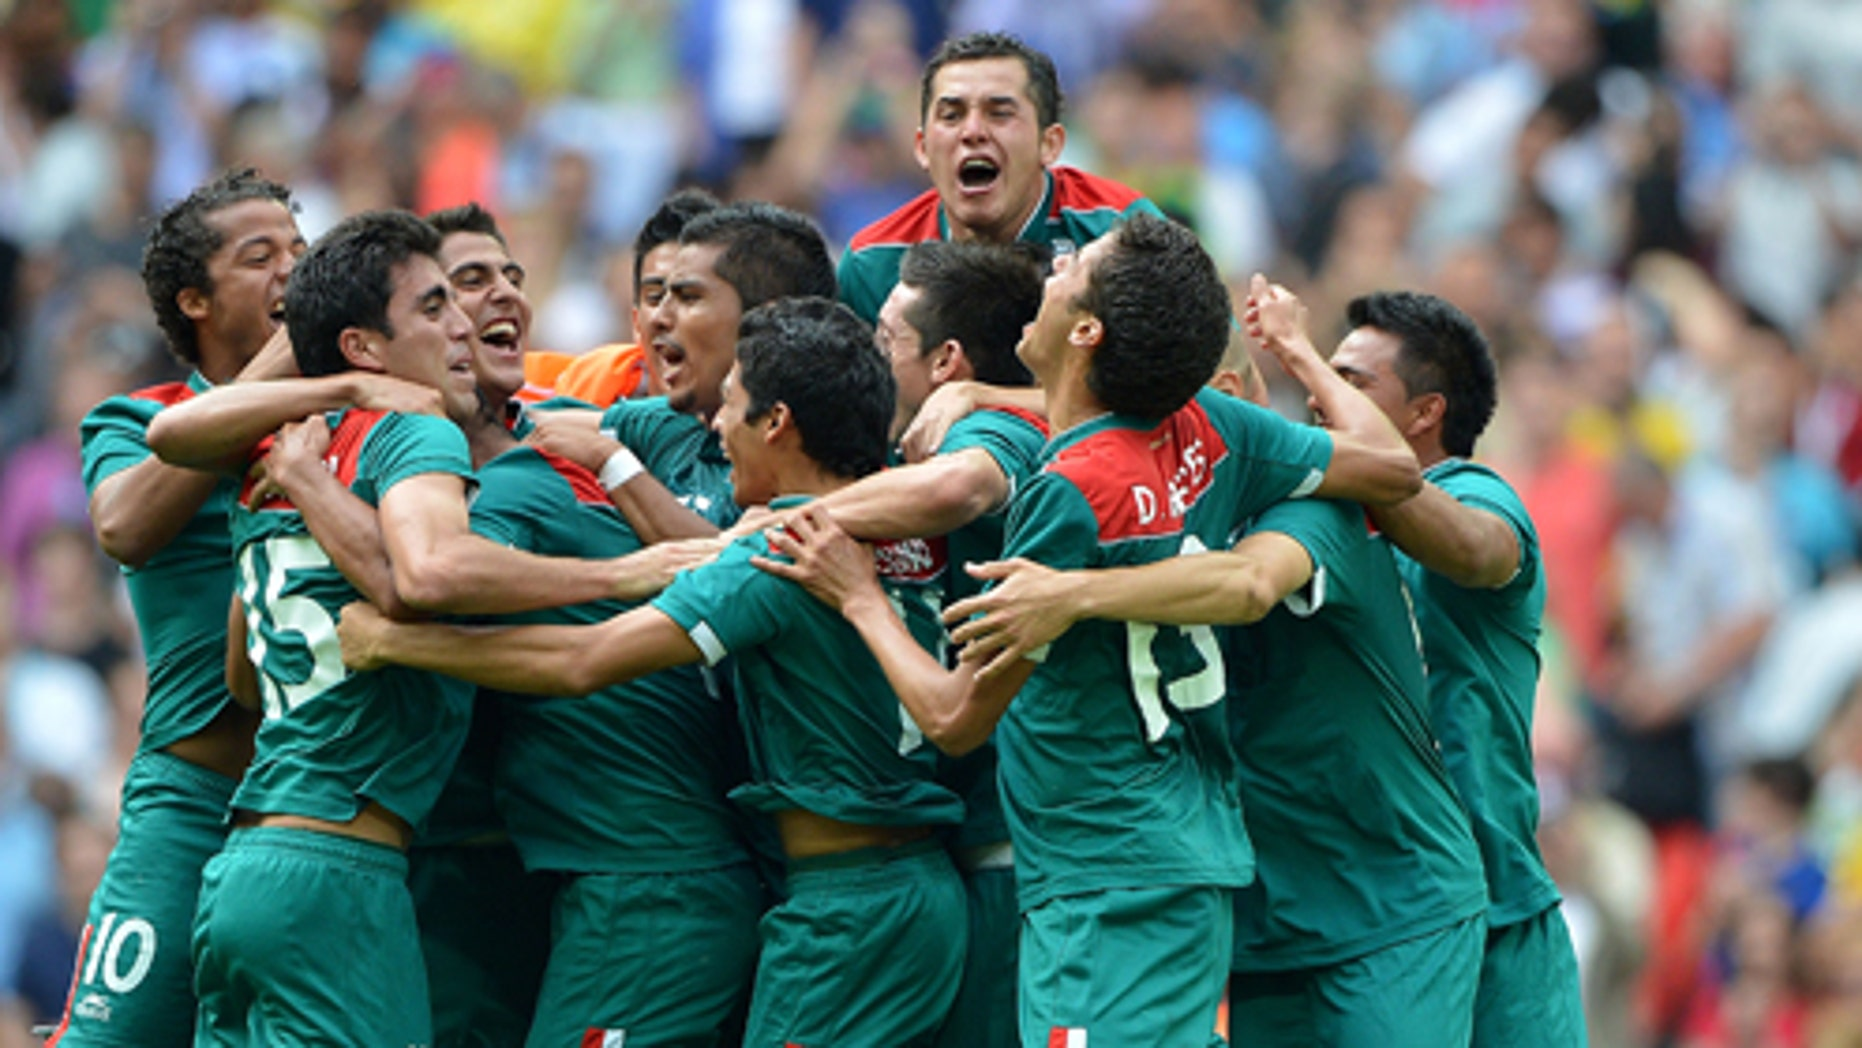 LONDON, ENGLAND - AUGUST 11:  Mexico players celebrate after winning gold in the Men's Football Final between Brazil and Mexico on Day 15 of the London 2012 Olympic Games at Wembley Stadium on August 11, 2012 in London, England.  (Photo by Jeff J Mitchell/Getty Images)